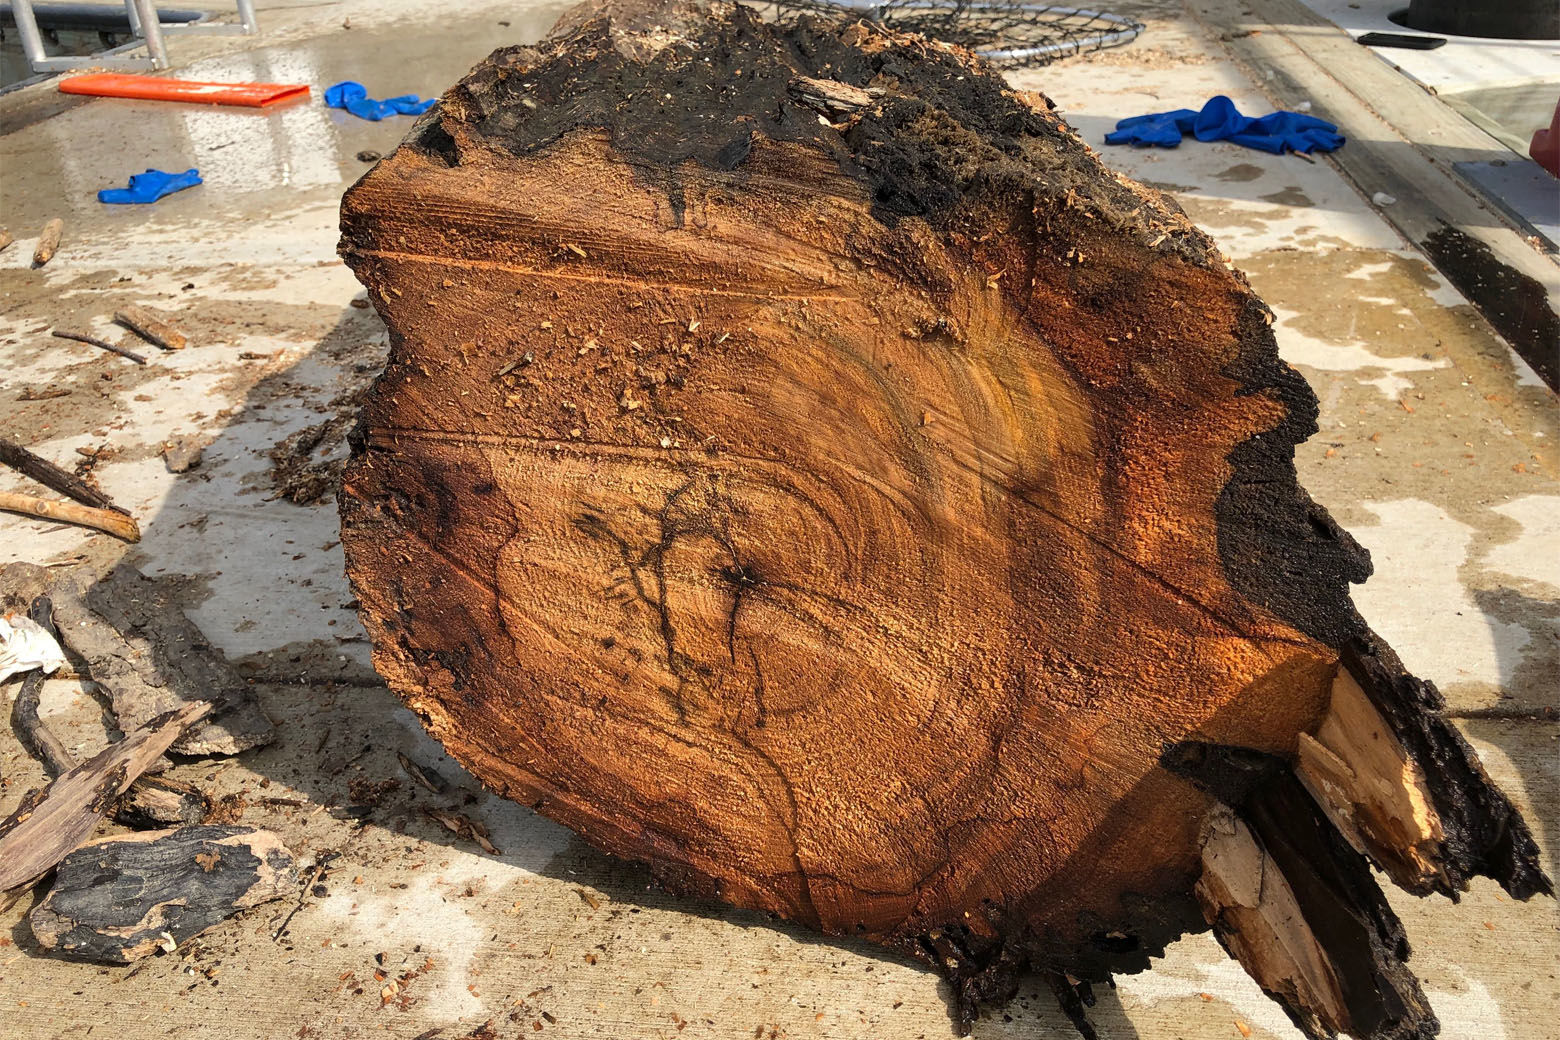 There's no telling how long this freshly cut hard wood log had been floating down the Potomac River toward the Southwest Watefront. (WTOP/Kristi King)